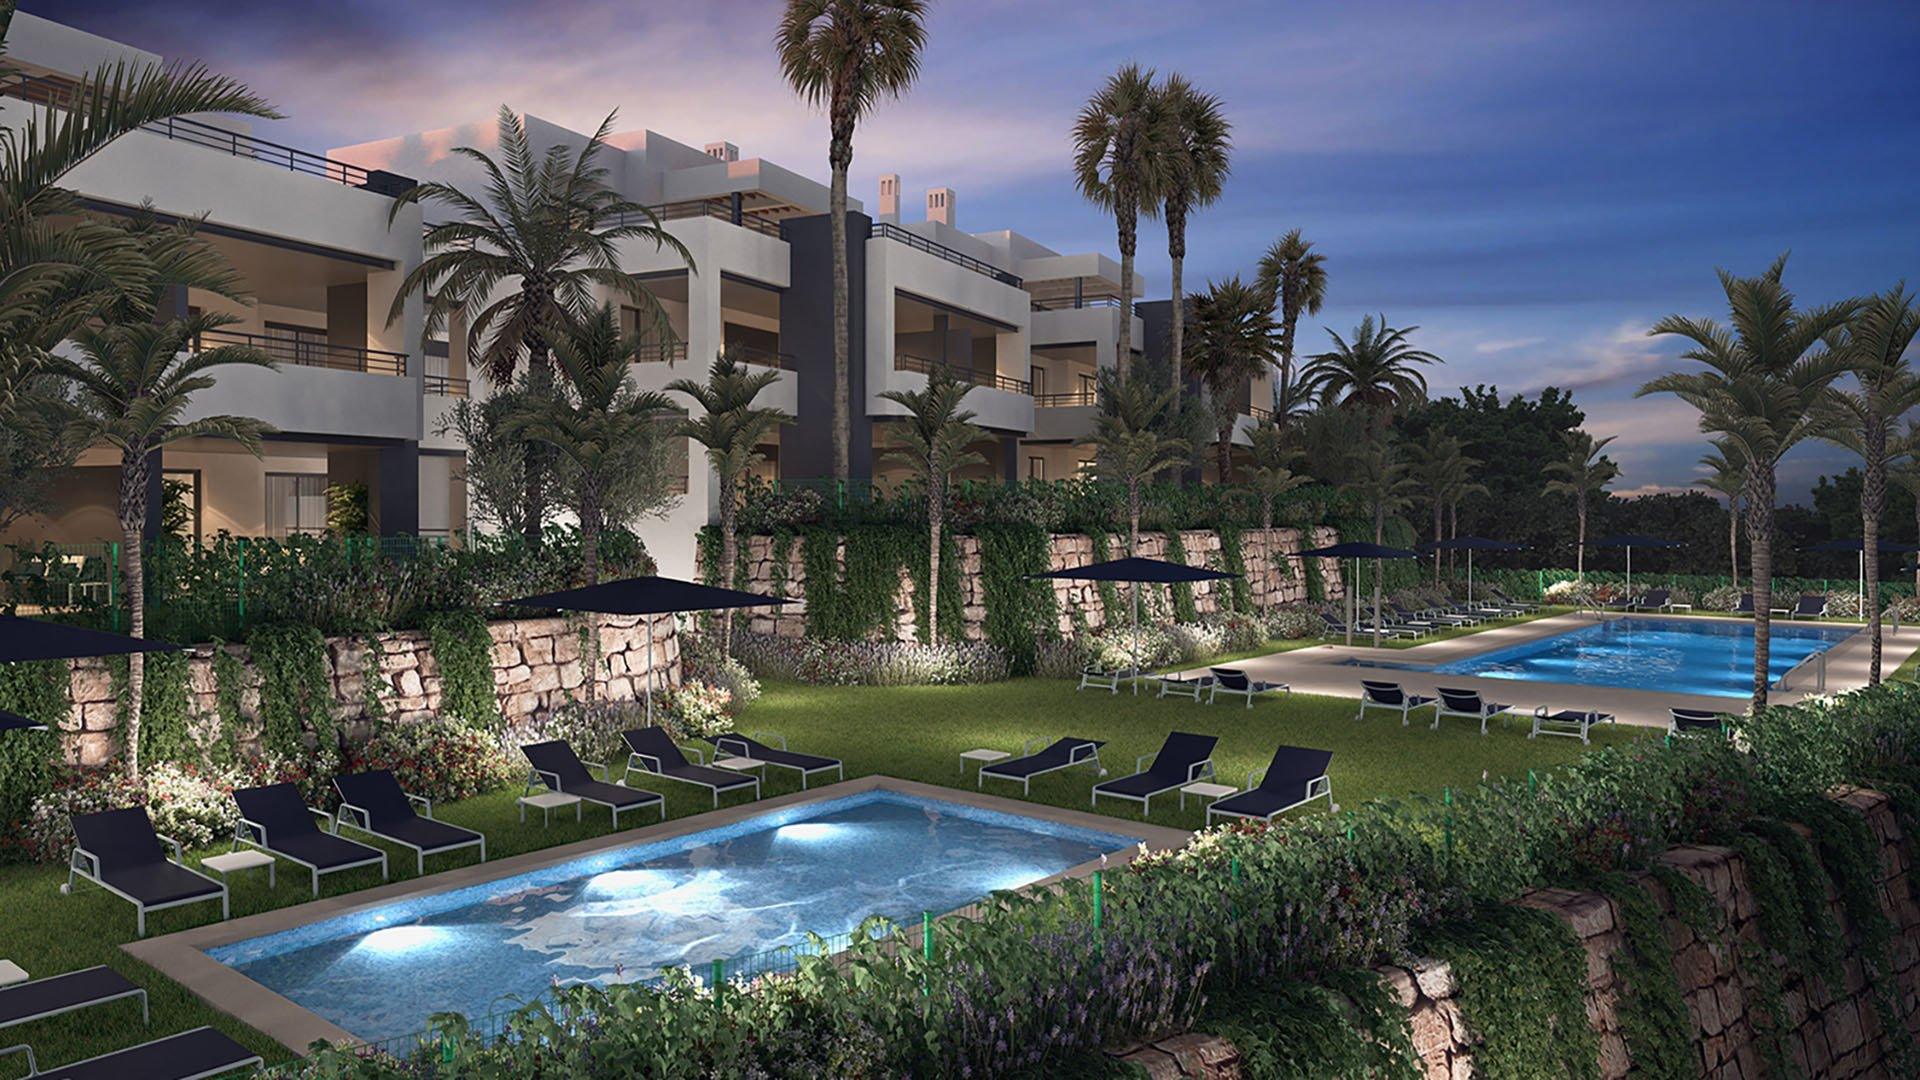 Royal Casares homes: Apartments in Casares surrounded by golf and stunning sea views